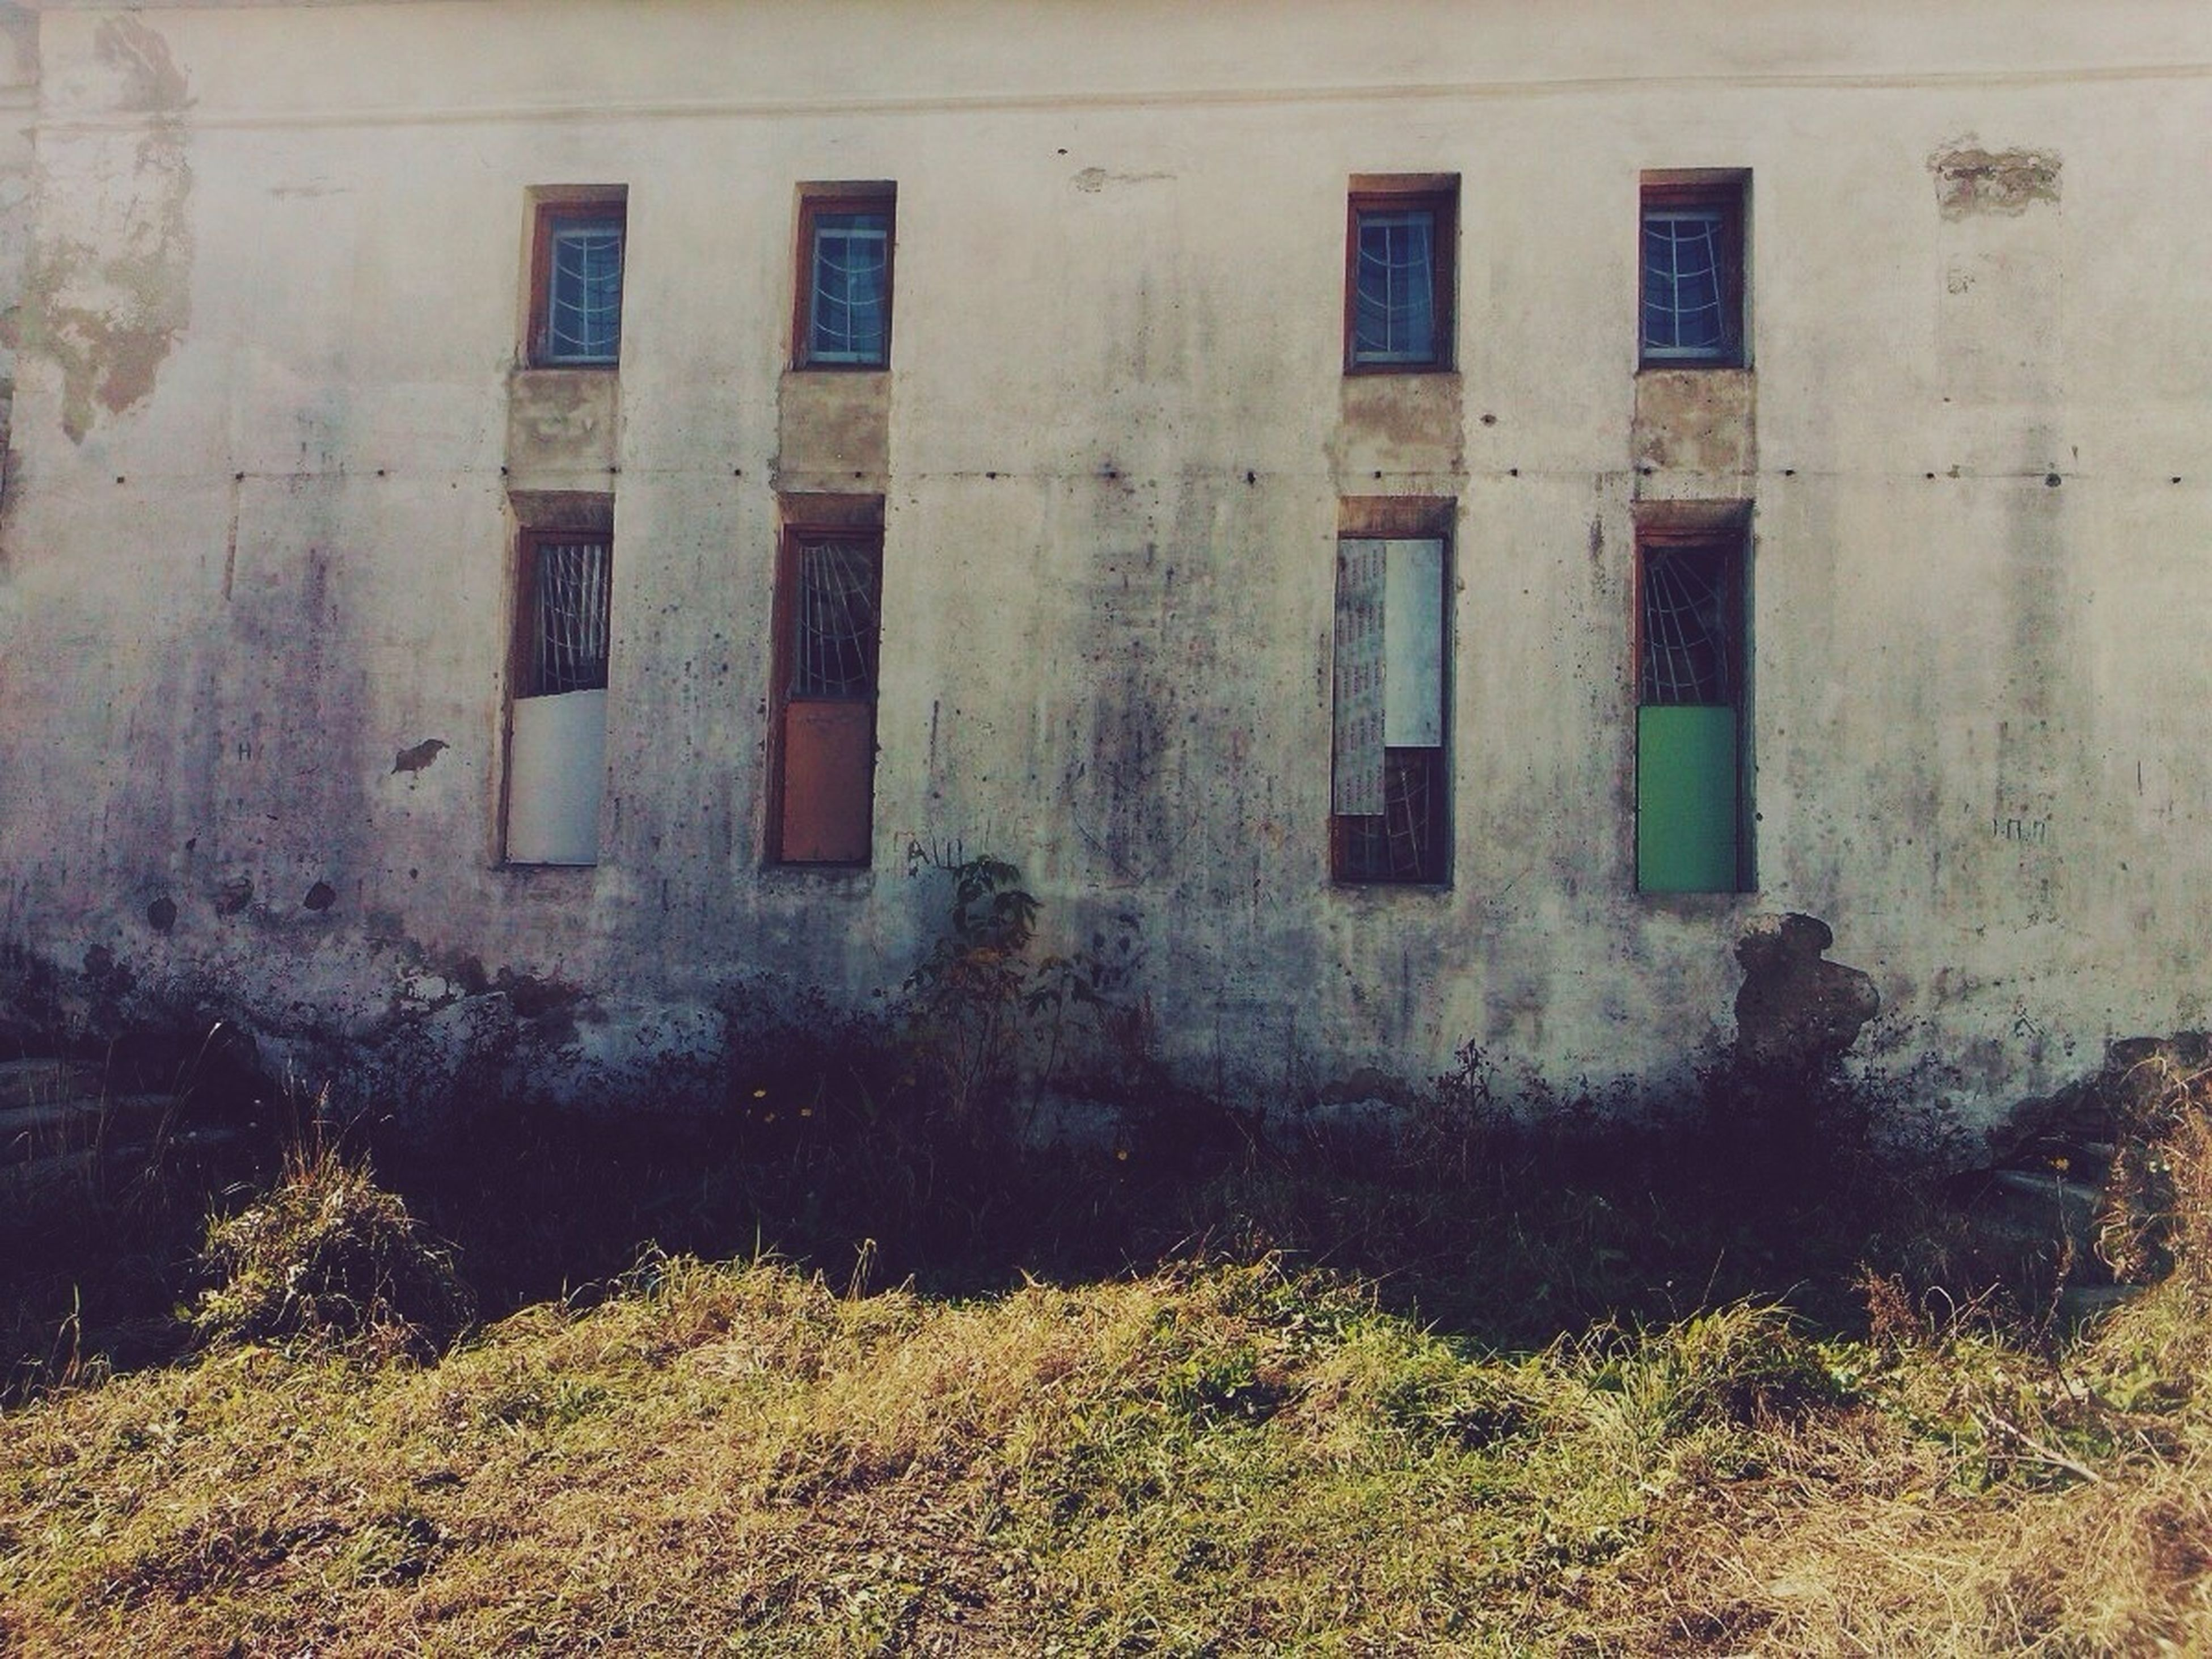 architecture, built structure, building exterior, window, abandoned, damaged, old, obsolete, building, weathered, run-down, deterioration, house, grass, wall - building feature, bad condition, day, outdoors, residential structure, residential building